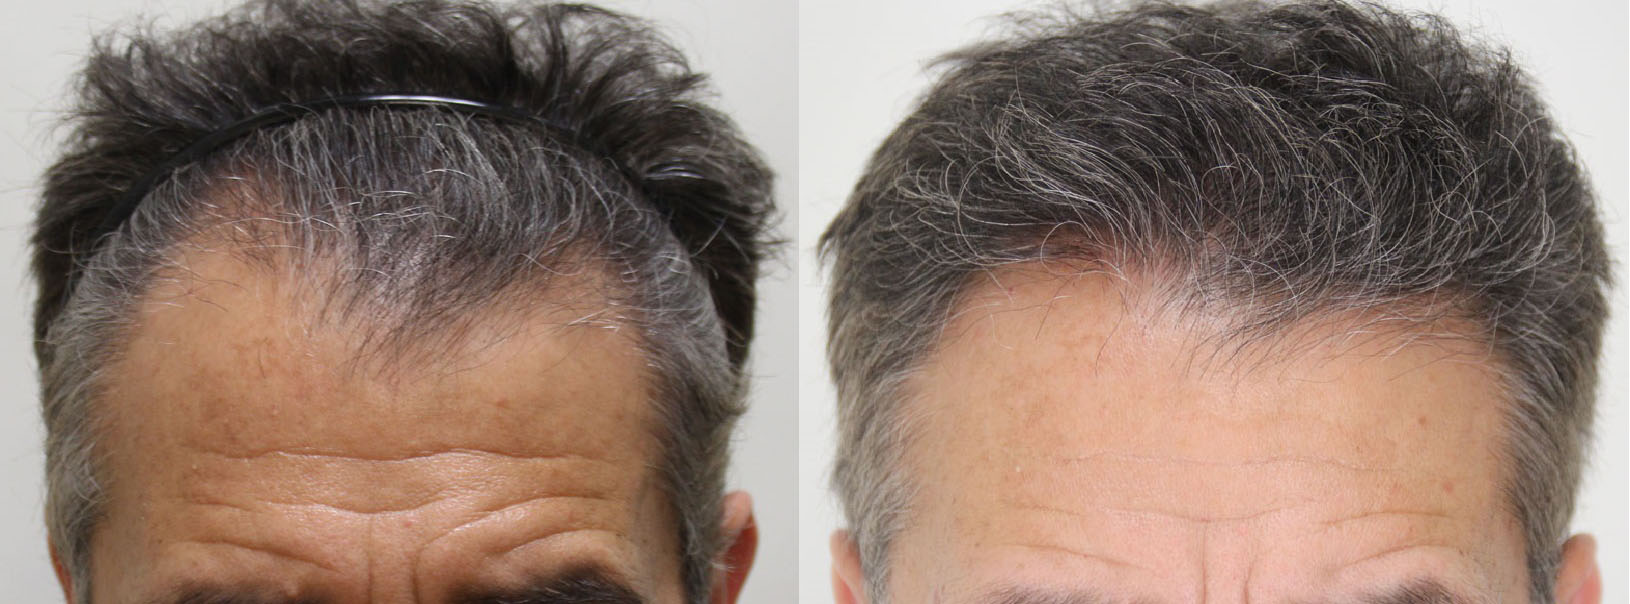 2808 graft Rahal FUE™ on a Norwood 5, 6 months post-op